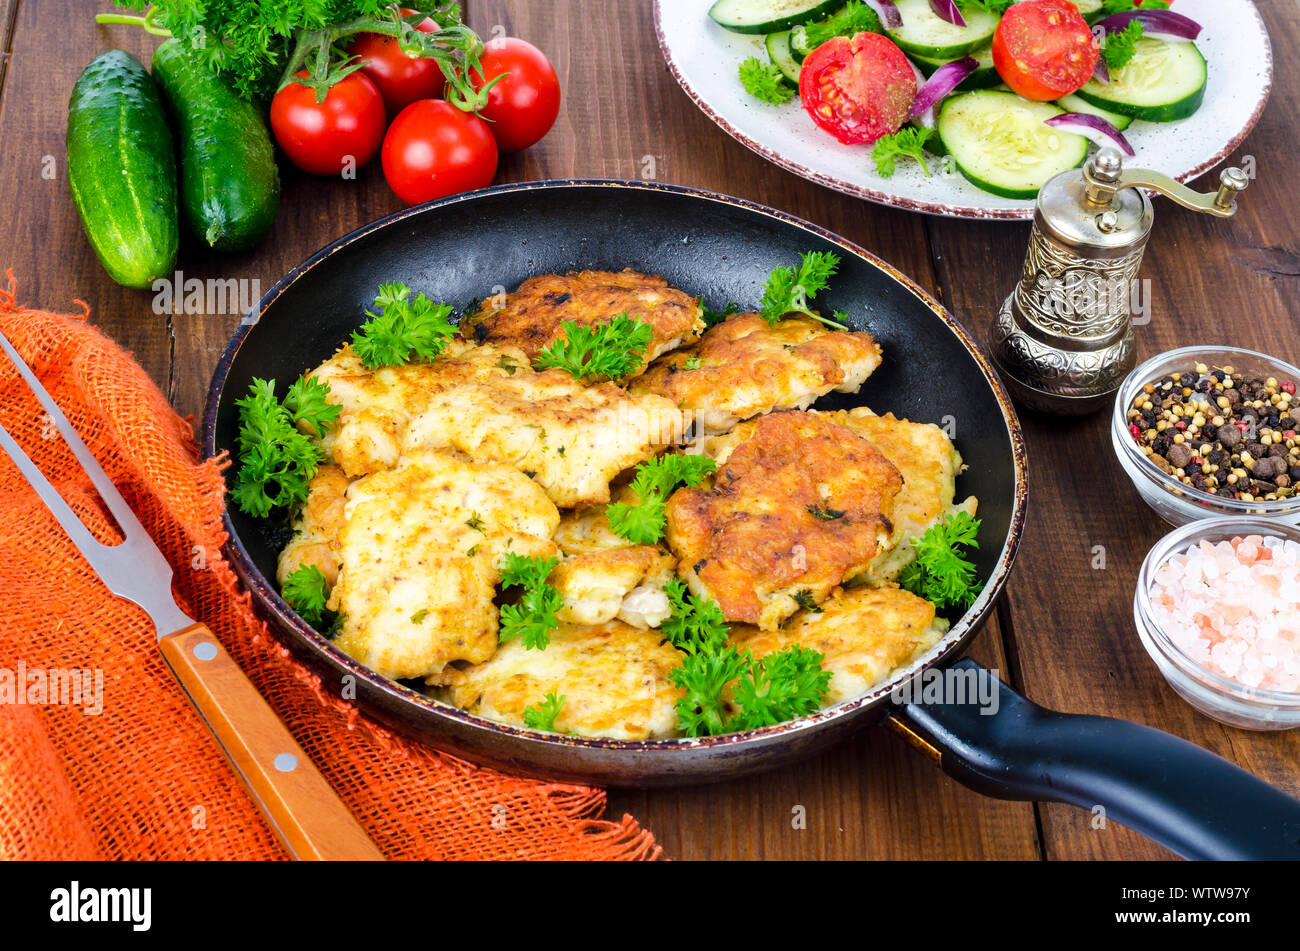 Fried meat pancakes in pan, vegetables, wooden background Stock Photo